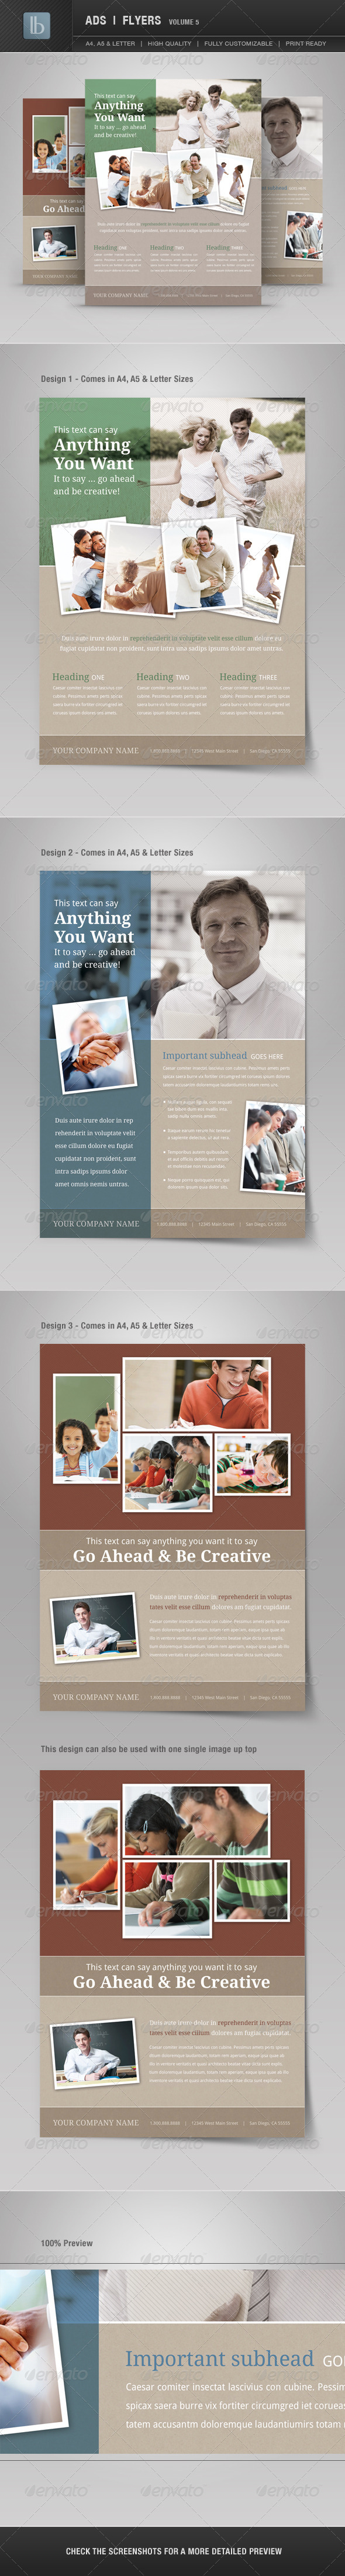 GraphicRiver Ads Business Flyers Volume 5 1933807